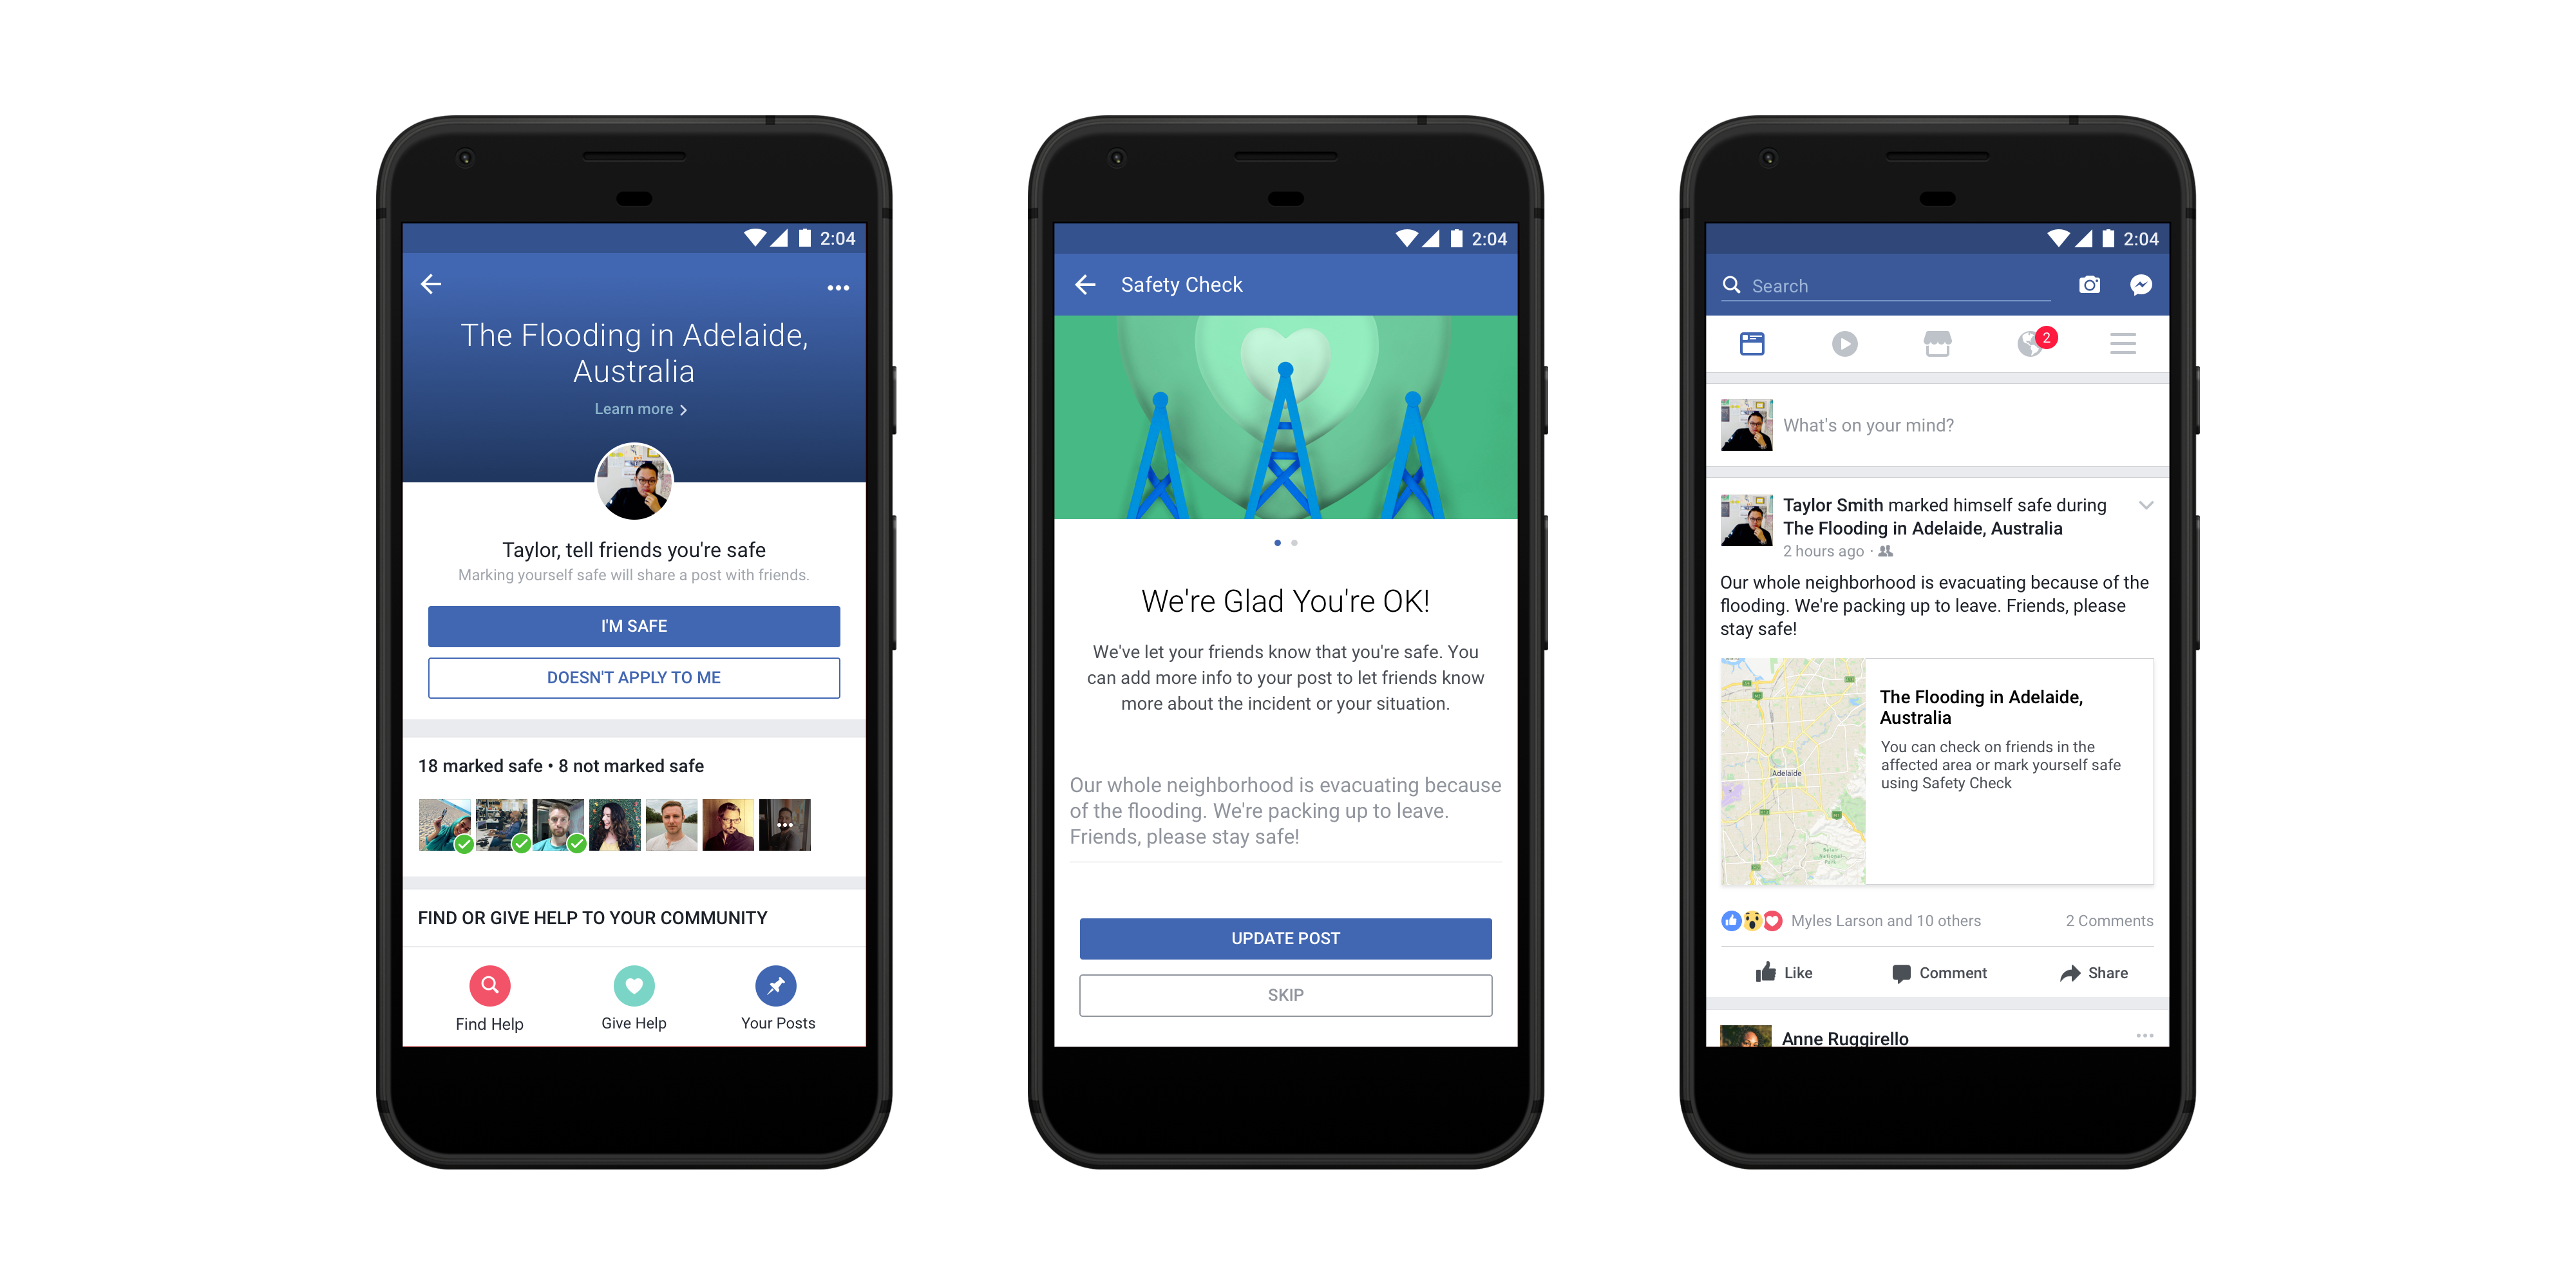 Facebook to add fundraising option to 'Safety Check'